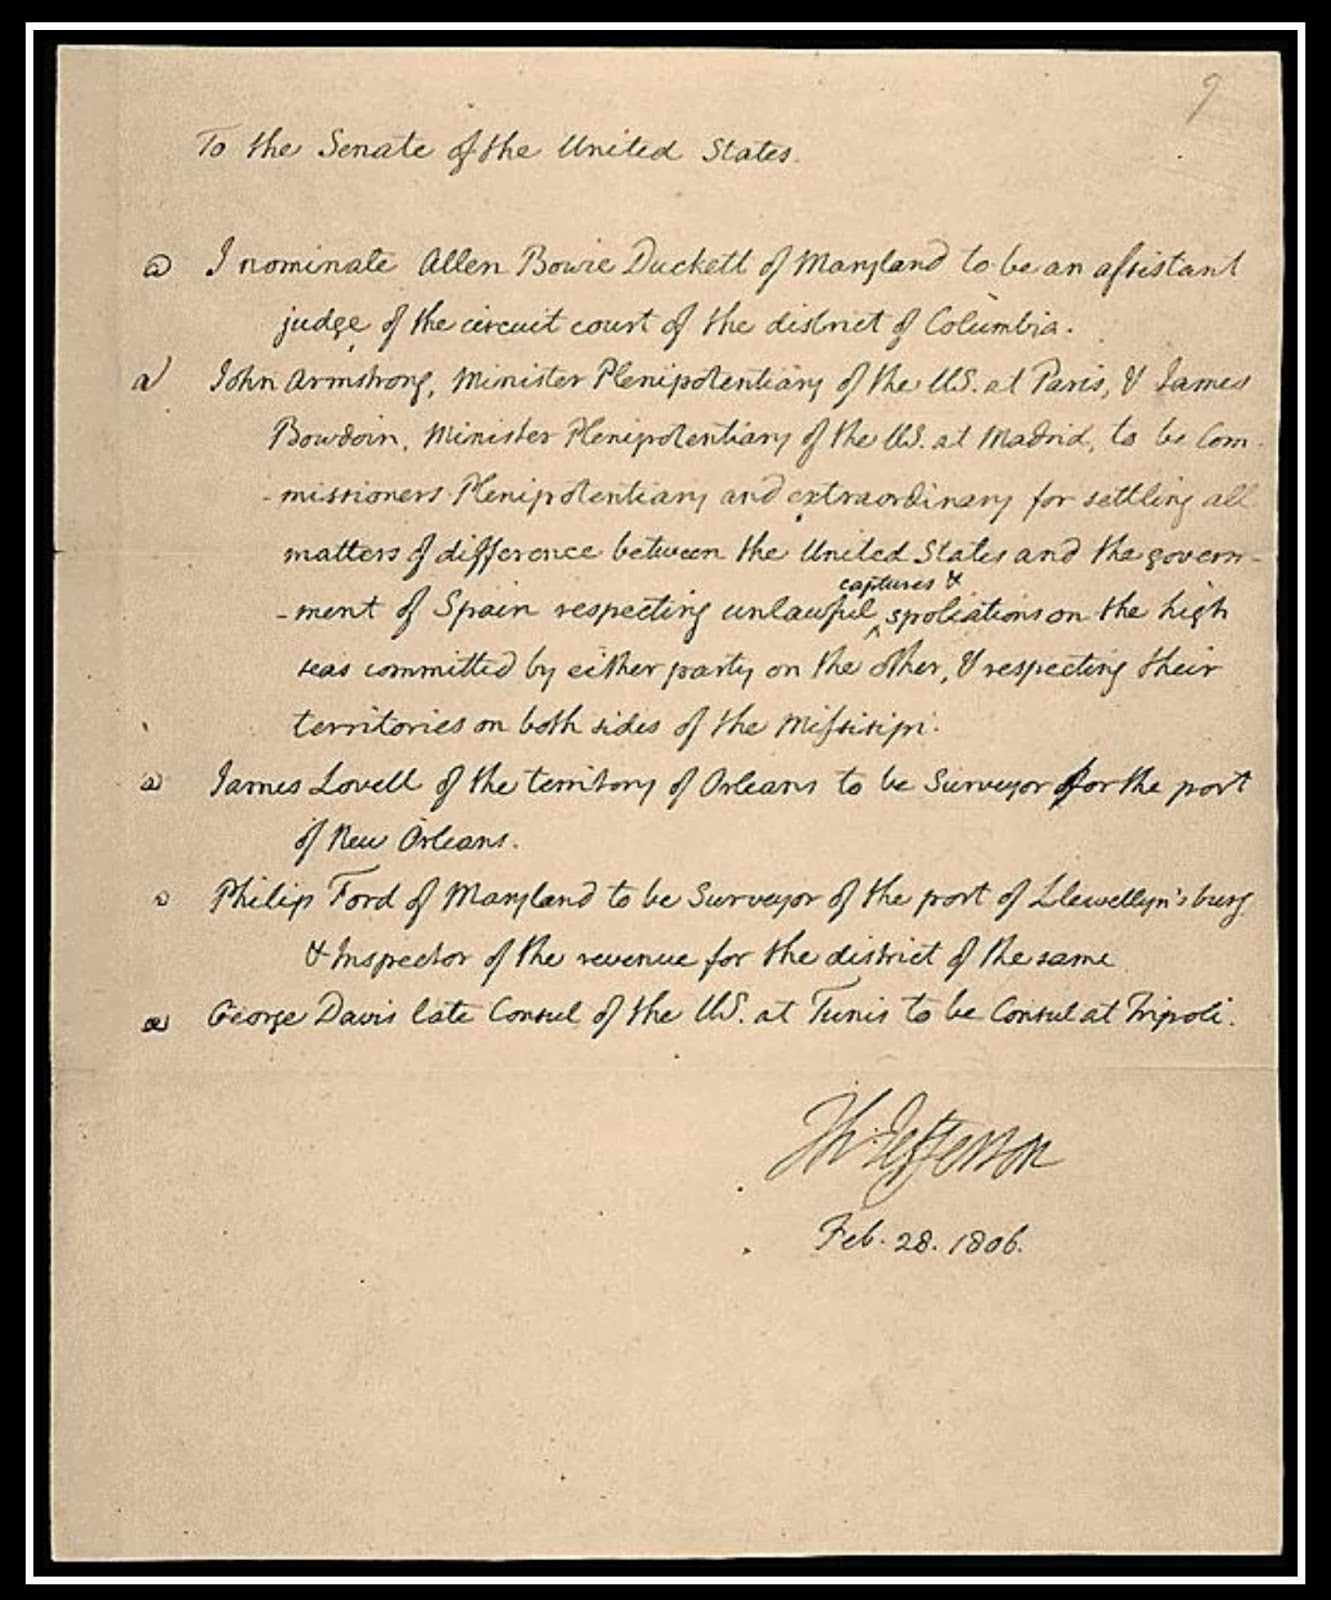 president thomas jefferson statesman thomas jefferson thomas jefferson letter submitting various executive nominations to the us senate for their advice and consent